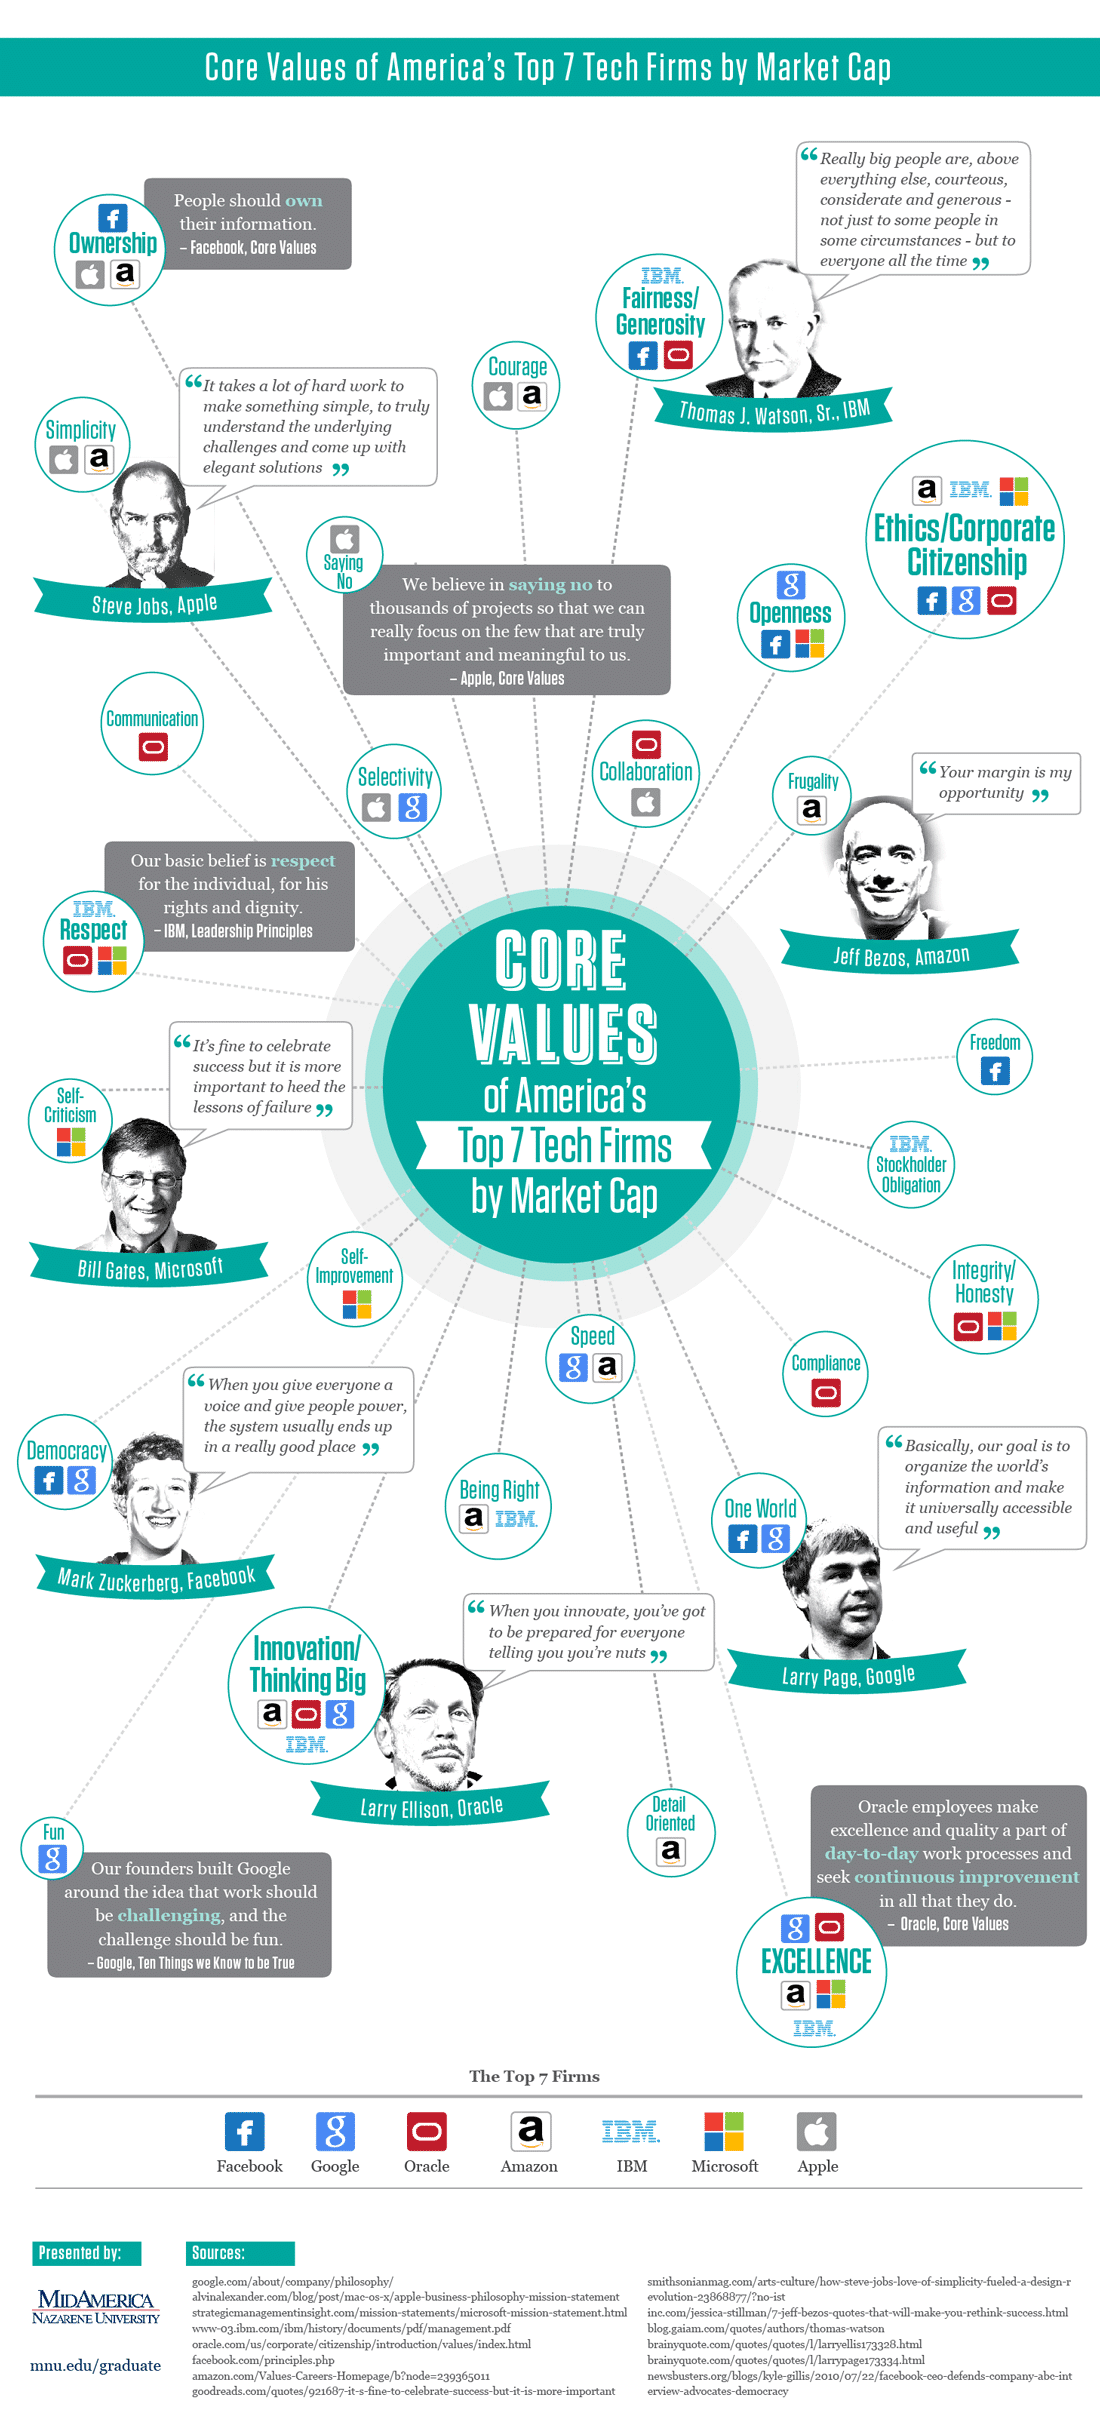 Core Values Of Successful Tech Companies [Infographic]